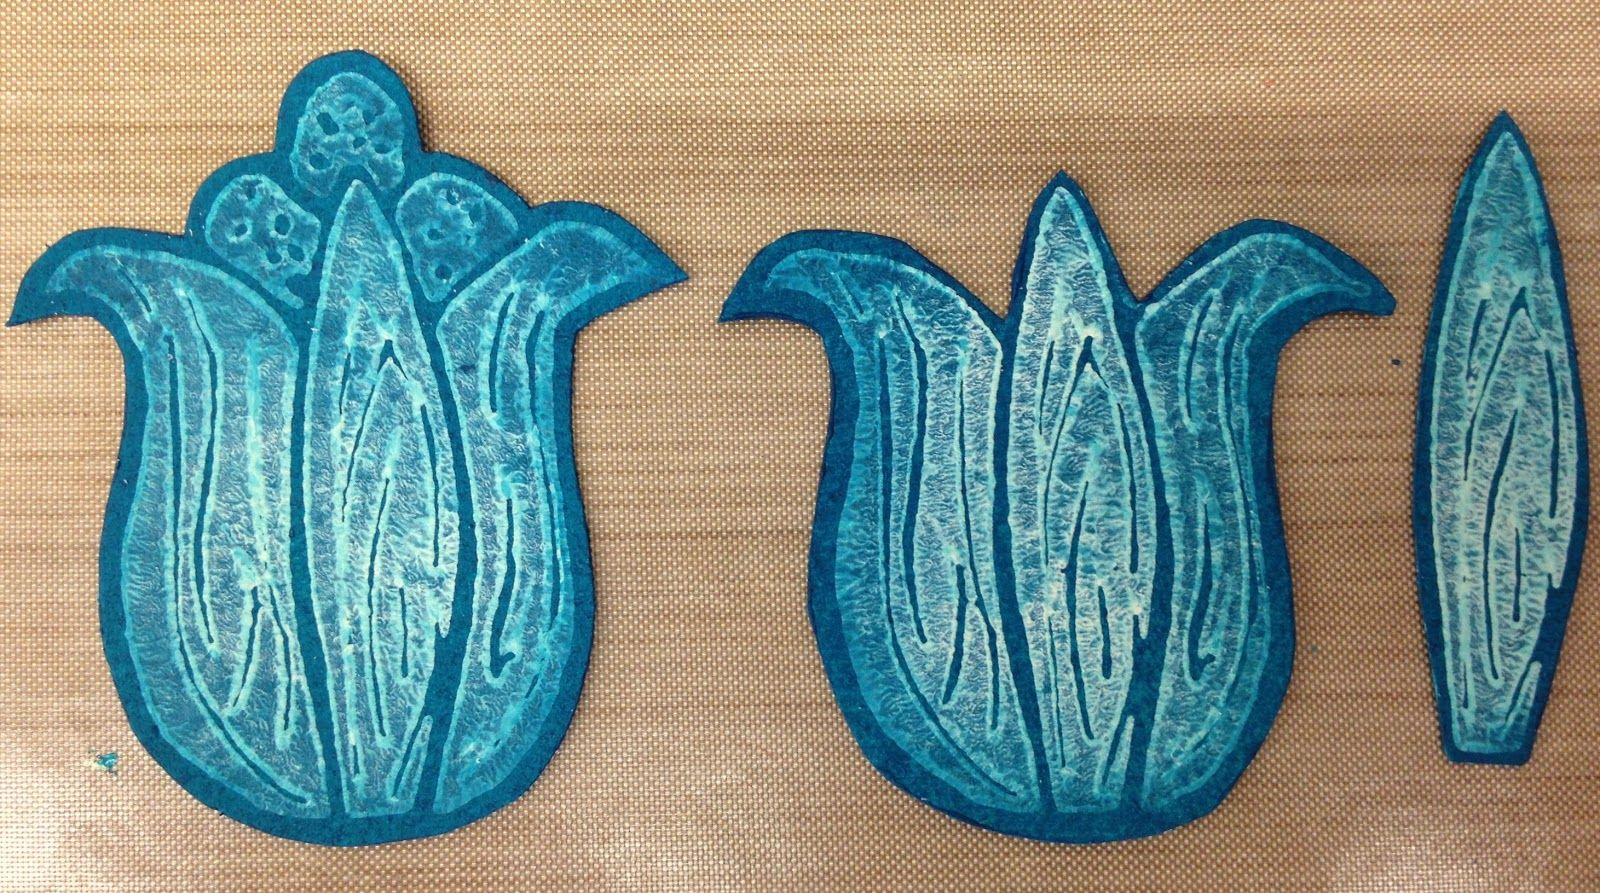 Now using Honey Dew, Beach Hut and South Pacific, print three tulip heads on the pre-painted Grungepaper and trim them